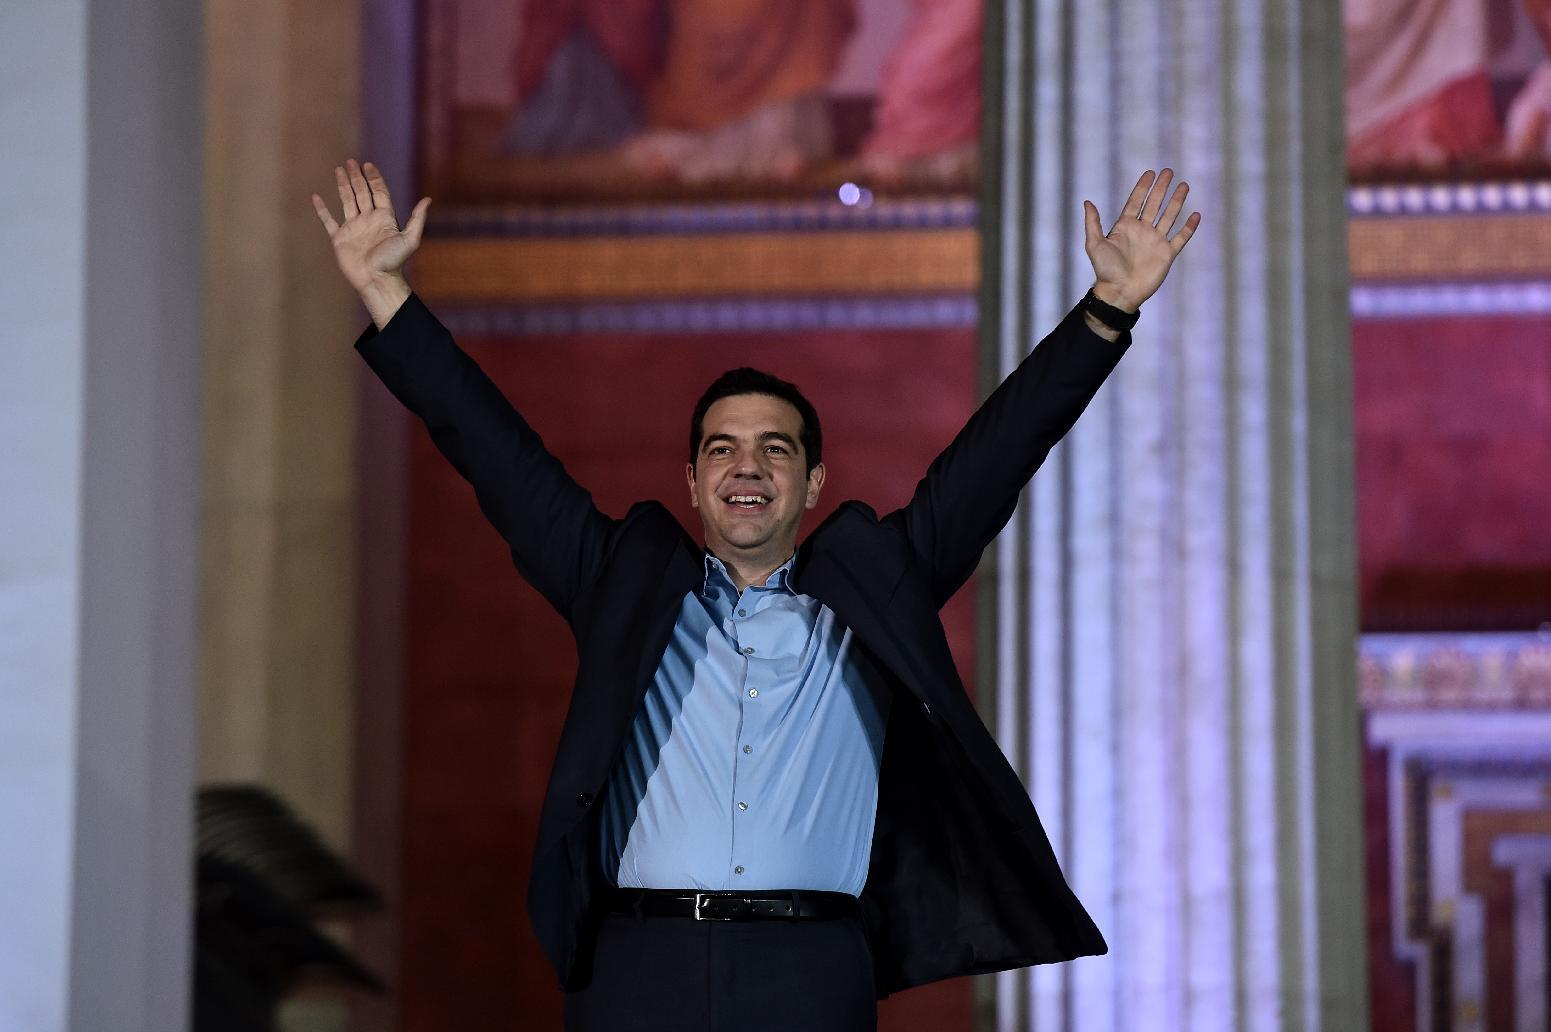 Alexis Tsipras, boyish PM out to restore Greek dignity